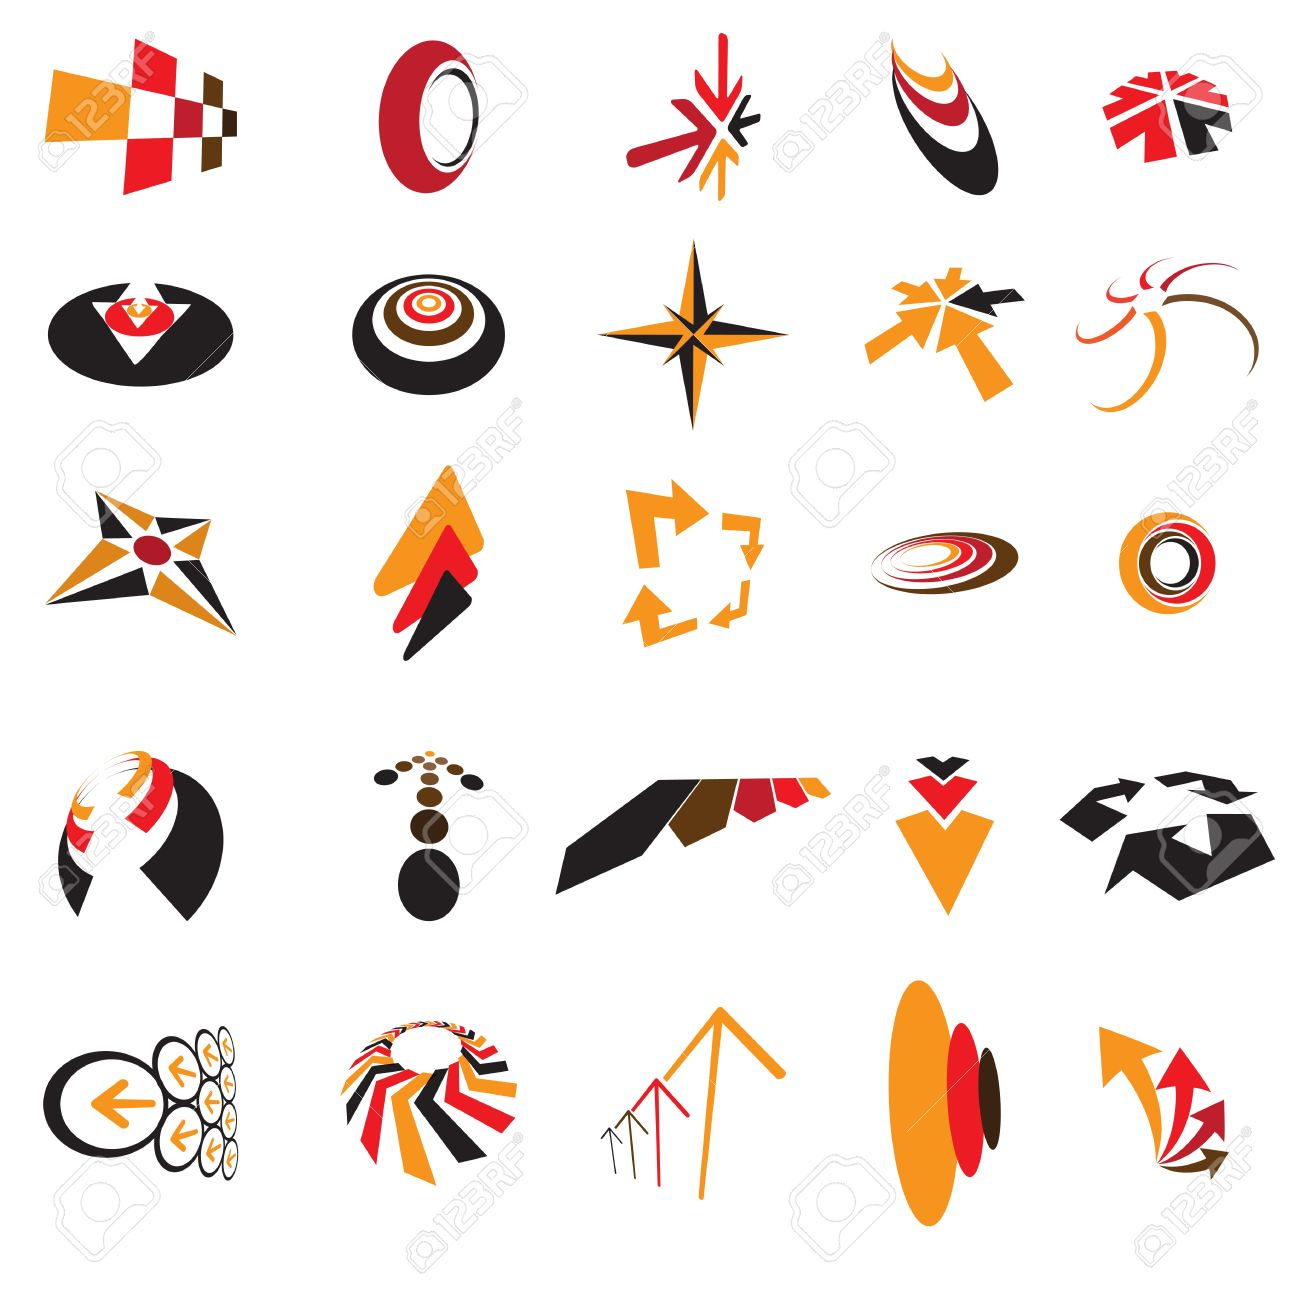 Collection of colorful business identity and brand logo icons created using arrows, direction symbols and signs, circles, curves, etc. These generic icons can be used in business cards, letter head. Stock Vector - 14194341